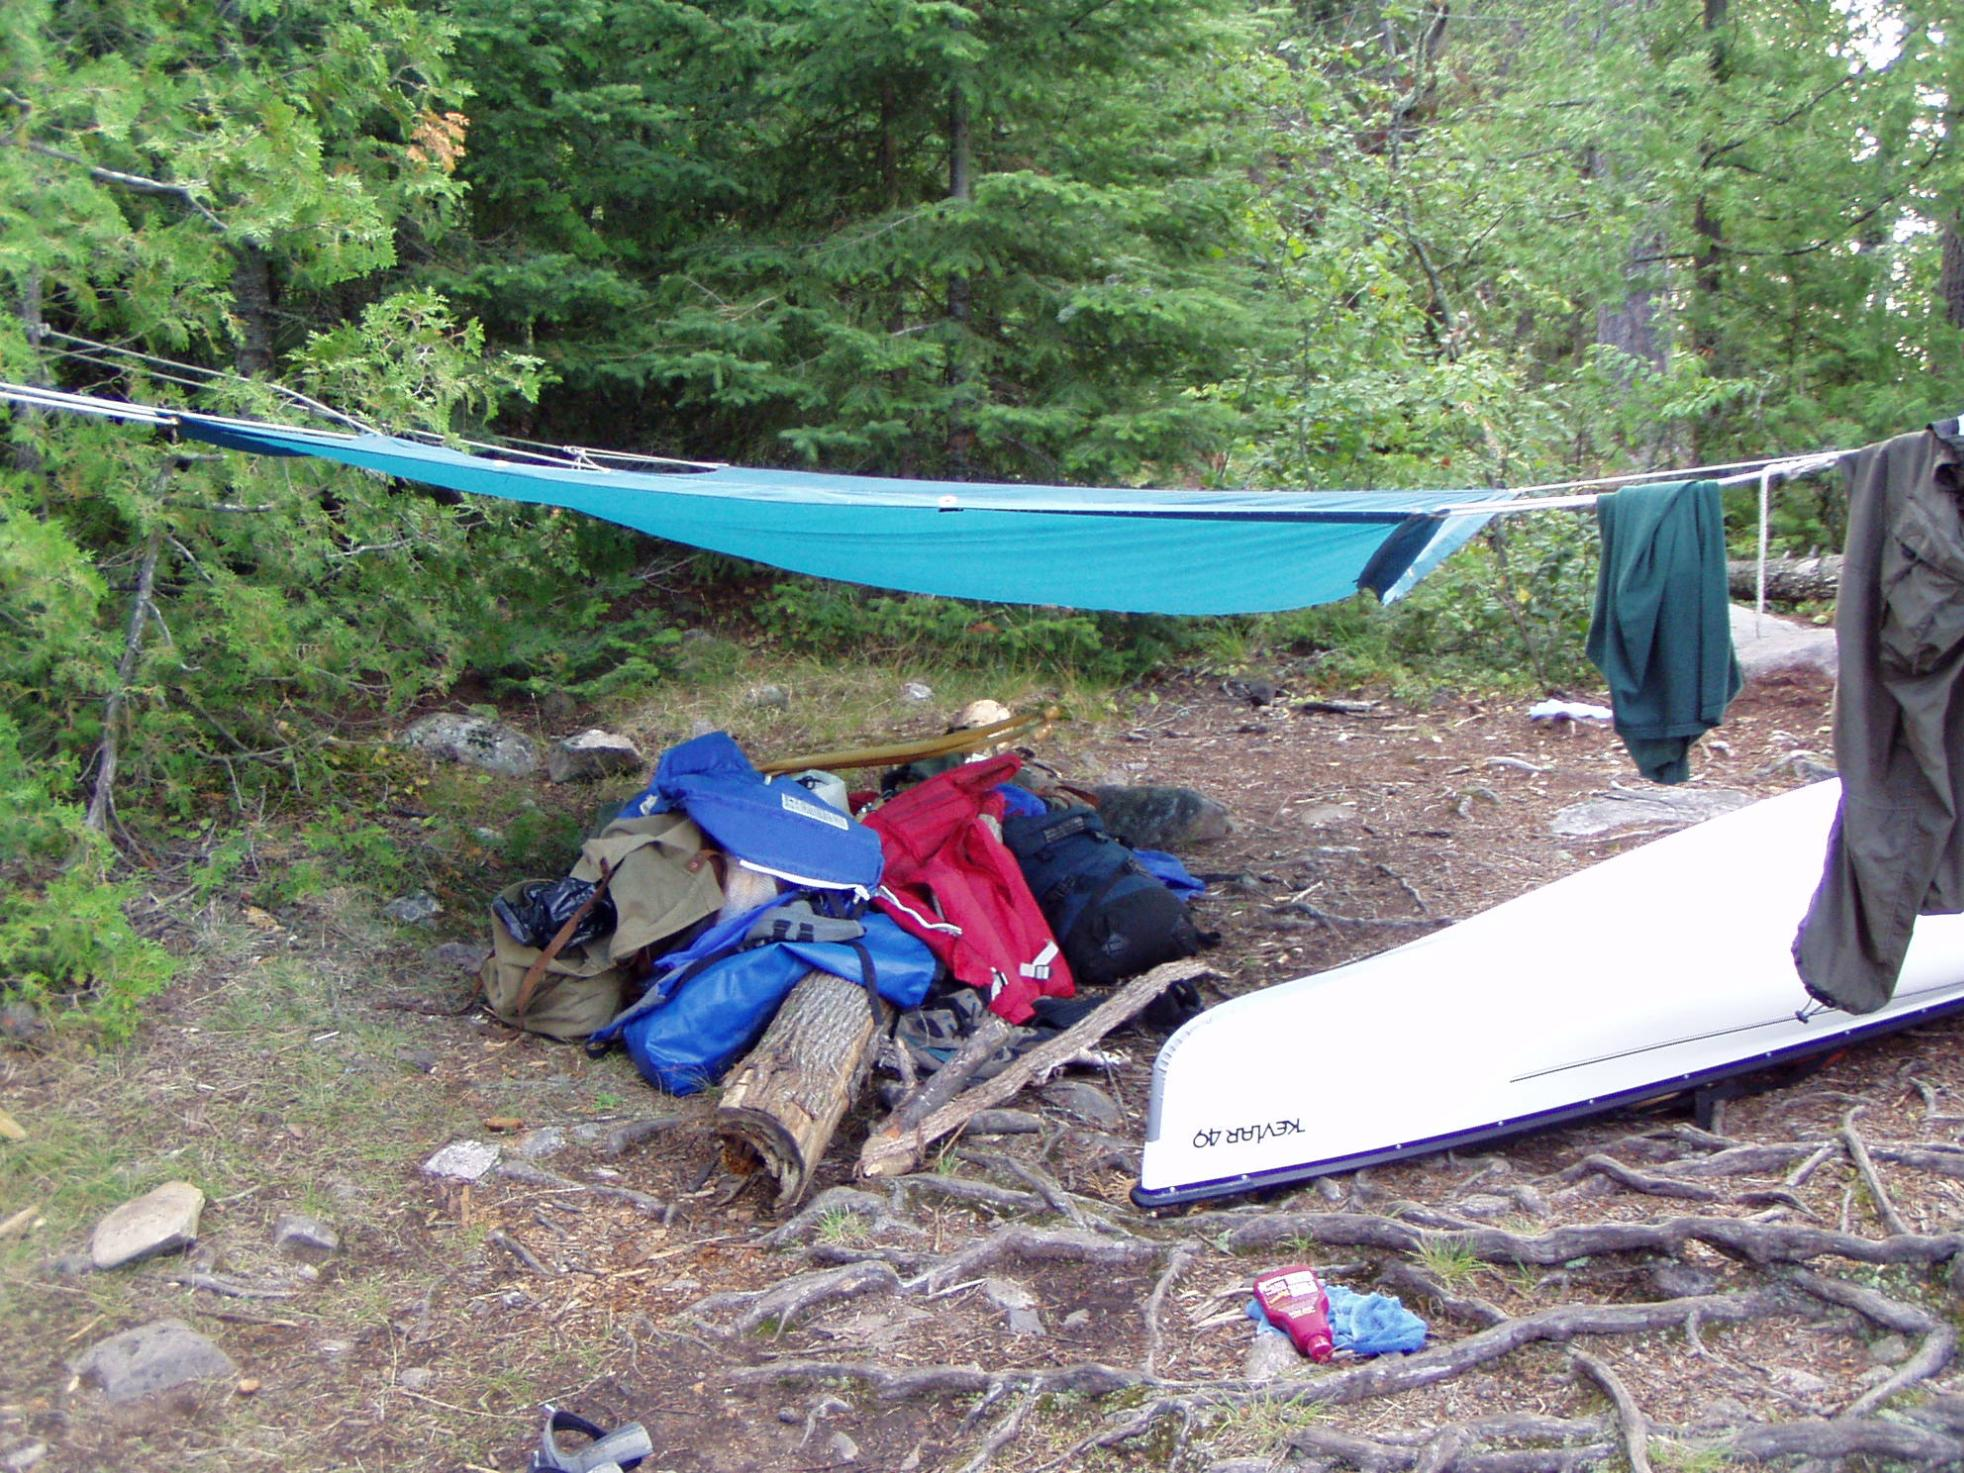 Old Tarp at BWCAW campsite